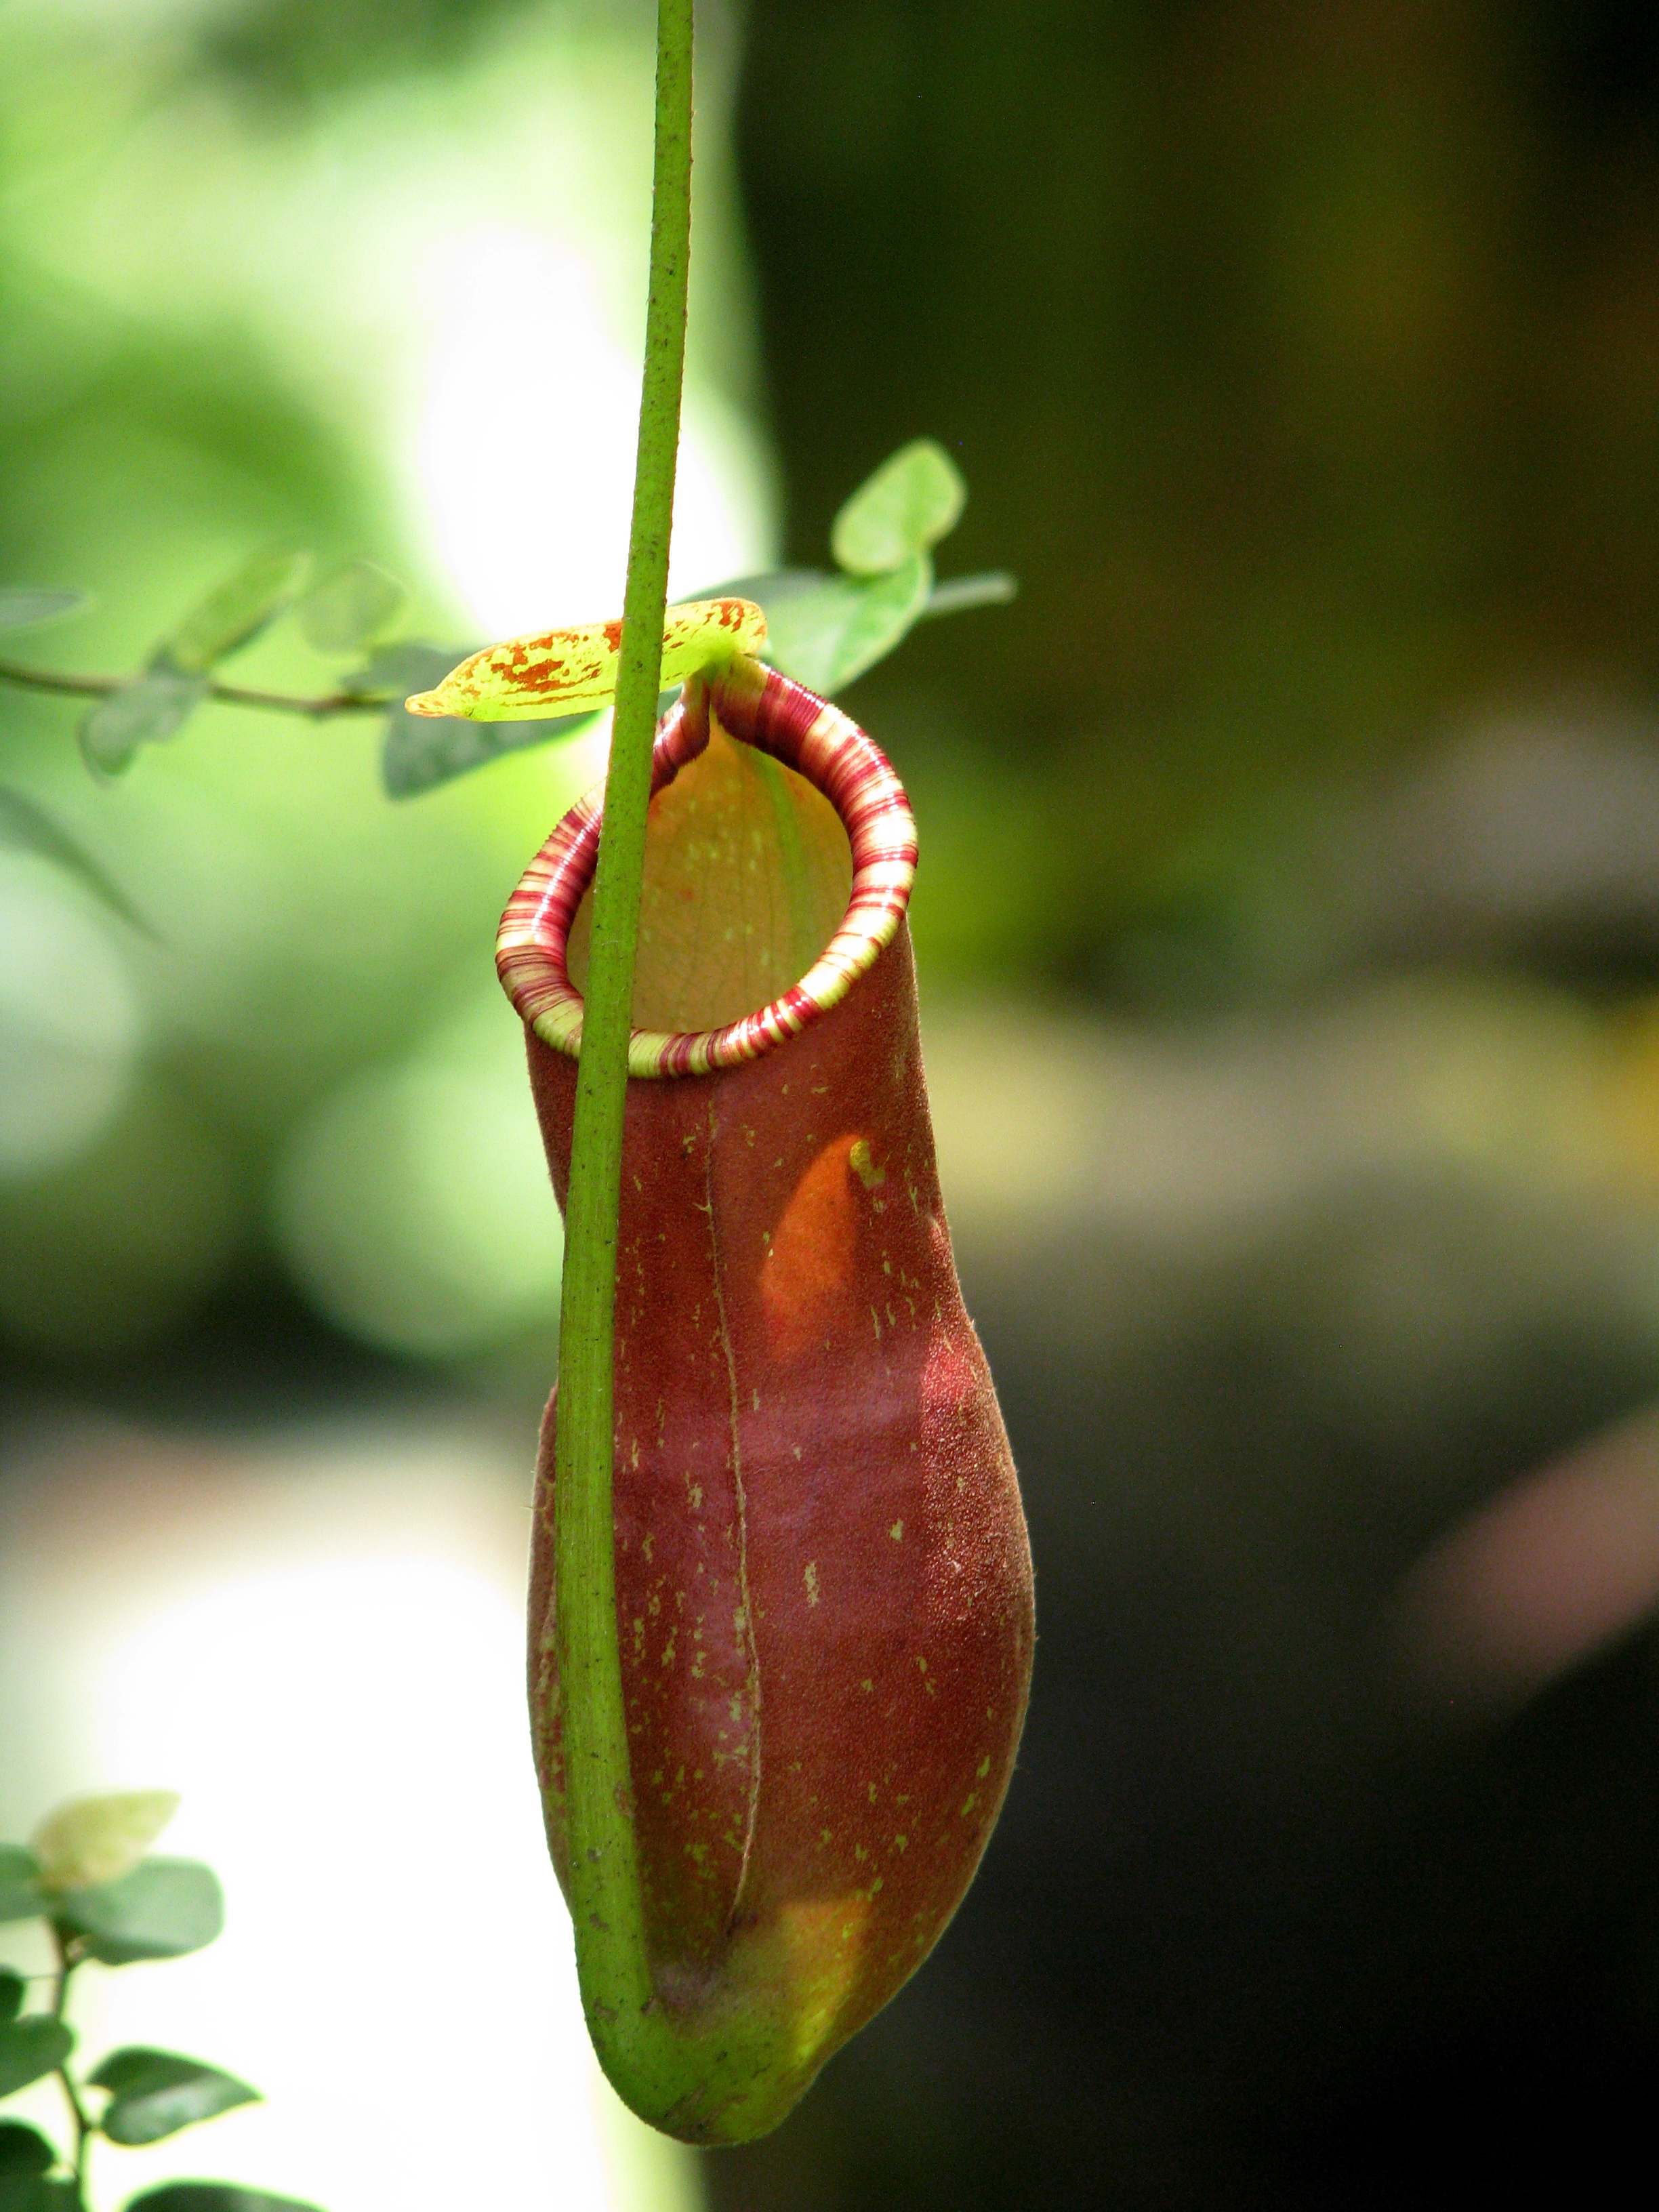 nepenthes basics how to grow nepenthes carnivorous pitcher plants html 1